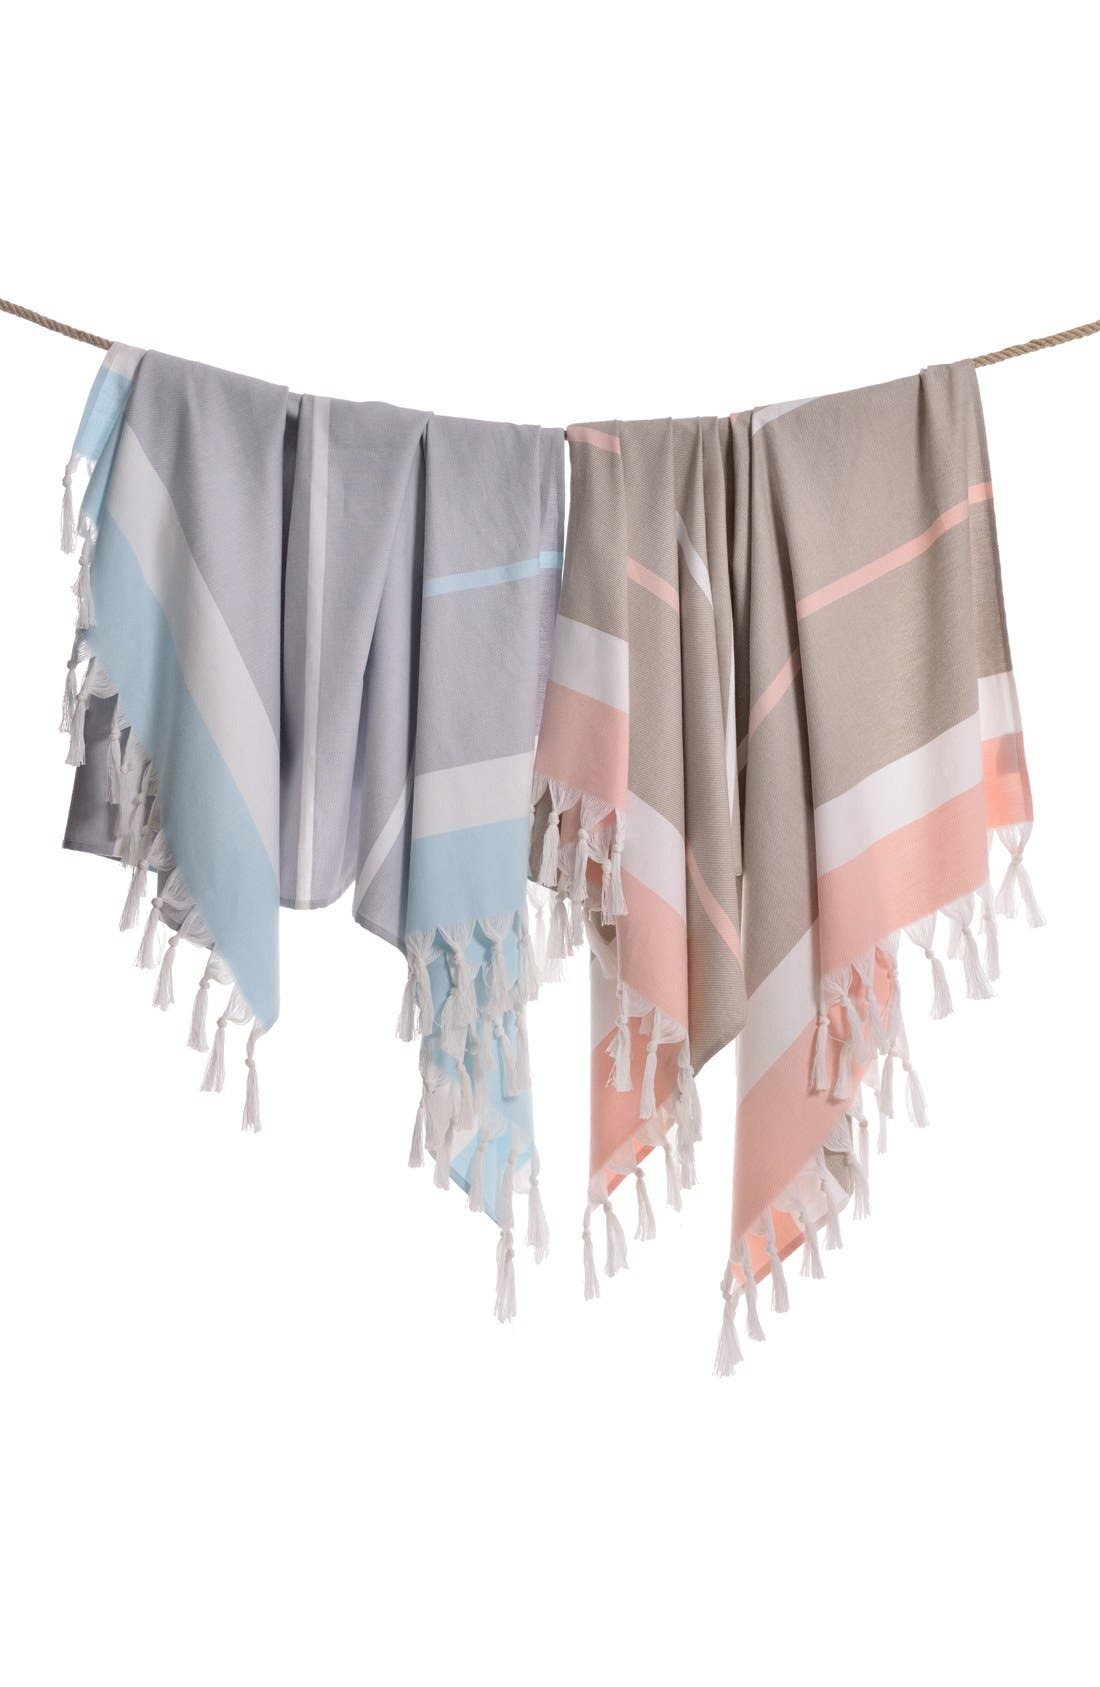 'Seaside Fun' Turkish Pestemal Towel,                             Alternate thumbnail 4, color,                             GREY